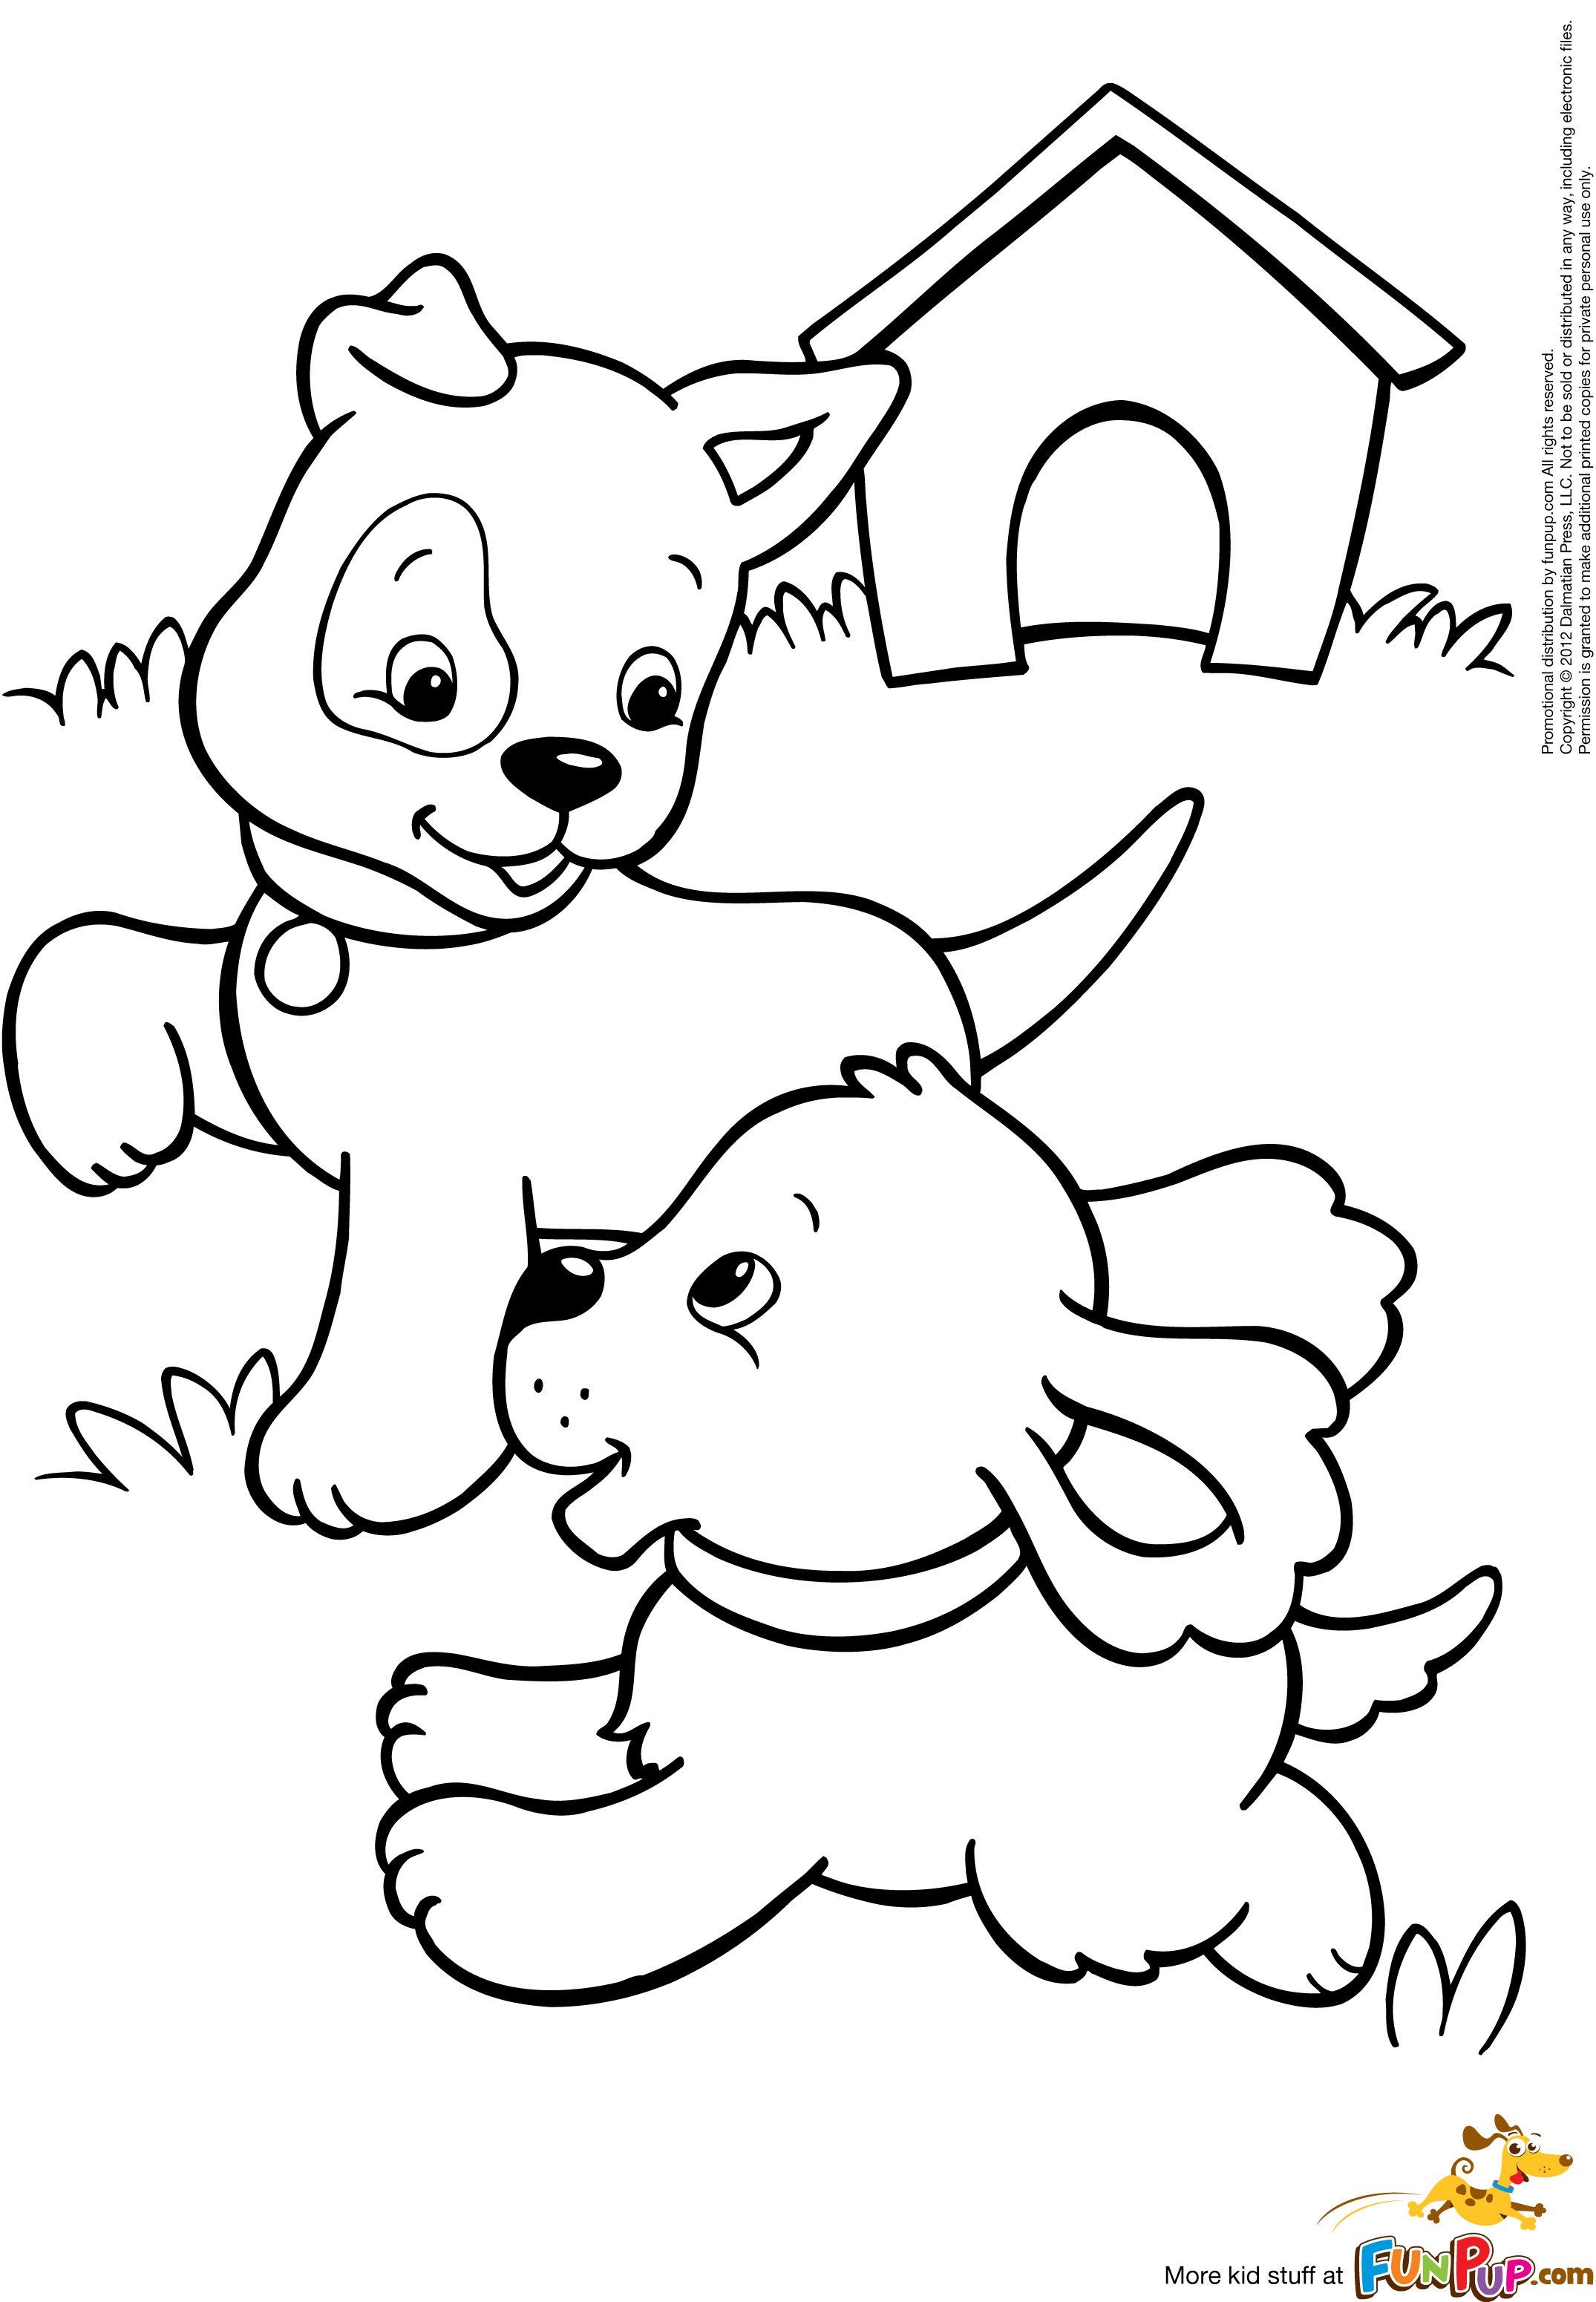 Coloring Book Pages Of Dogs : Realistic puppy coloring pages download and print for free